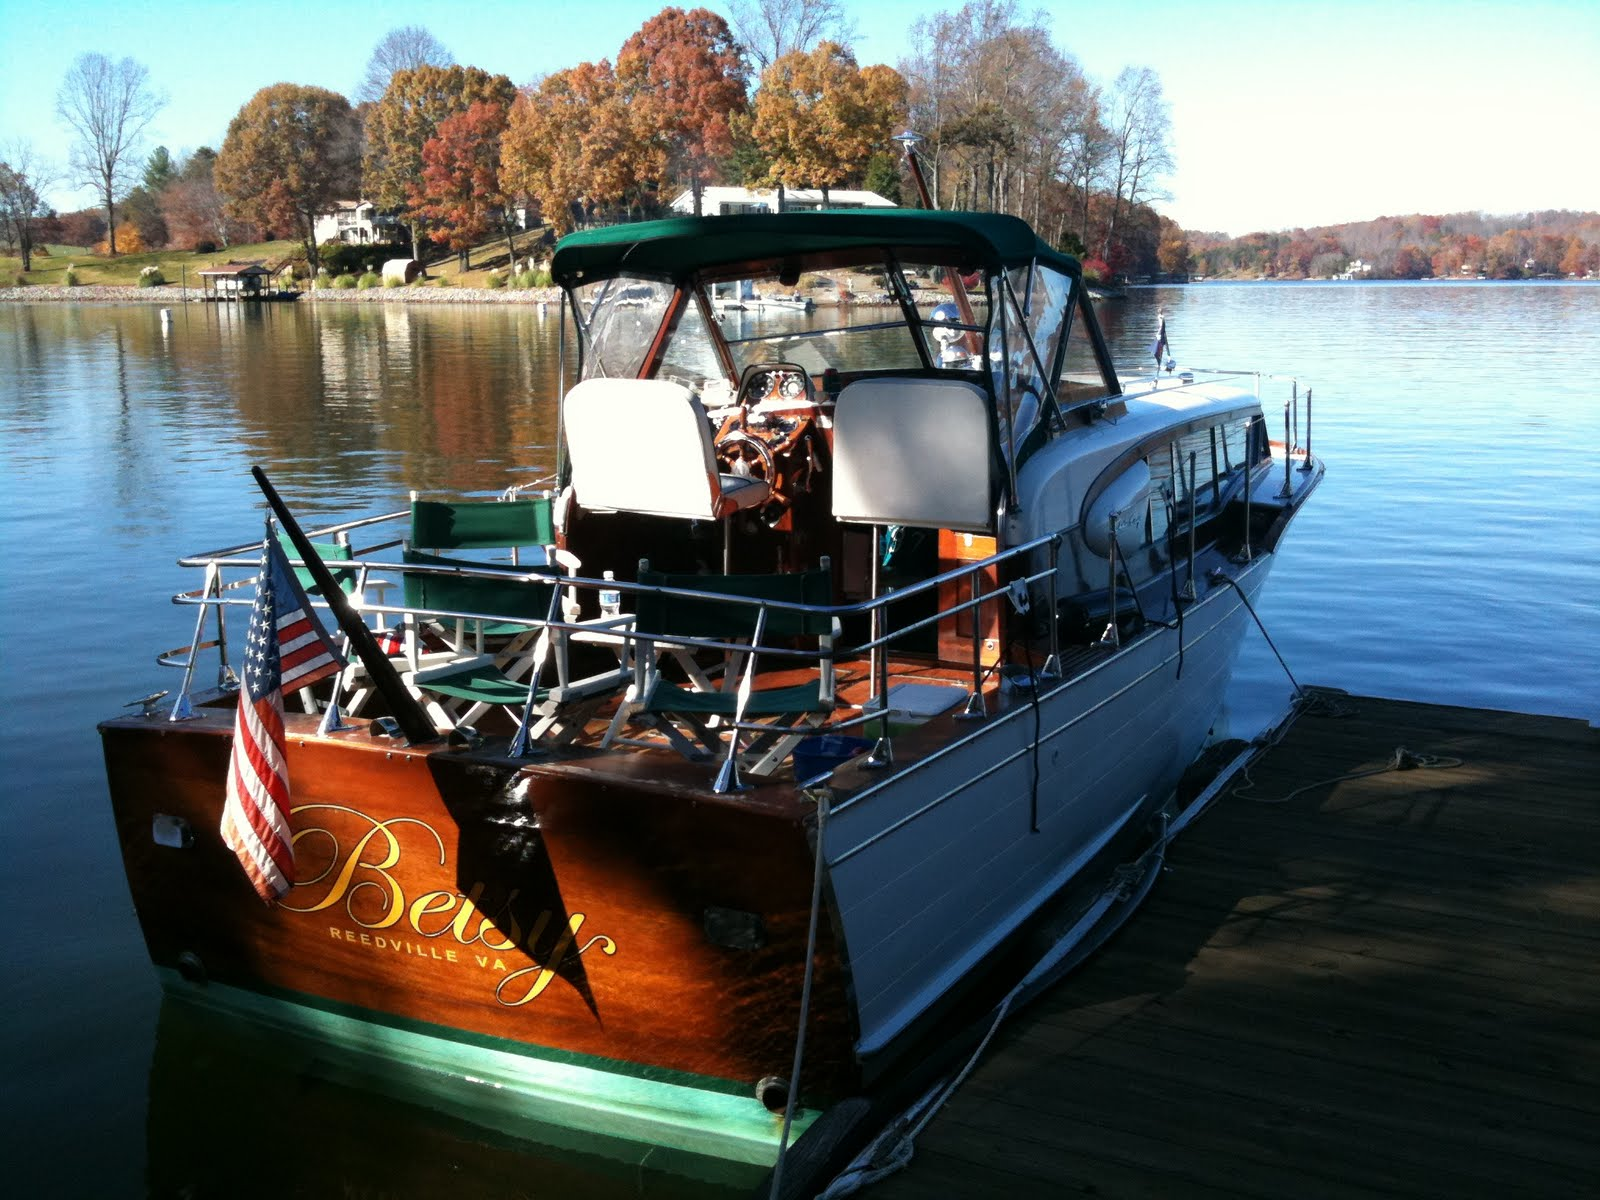 We Had A Great Time Shooting This Story Thanks To George Blosser And The Members Of Smith Mountain Lake Antique Classic Boat Society